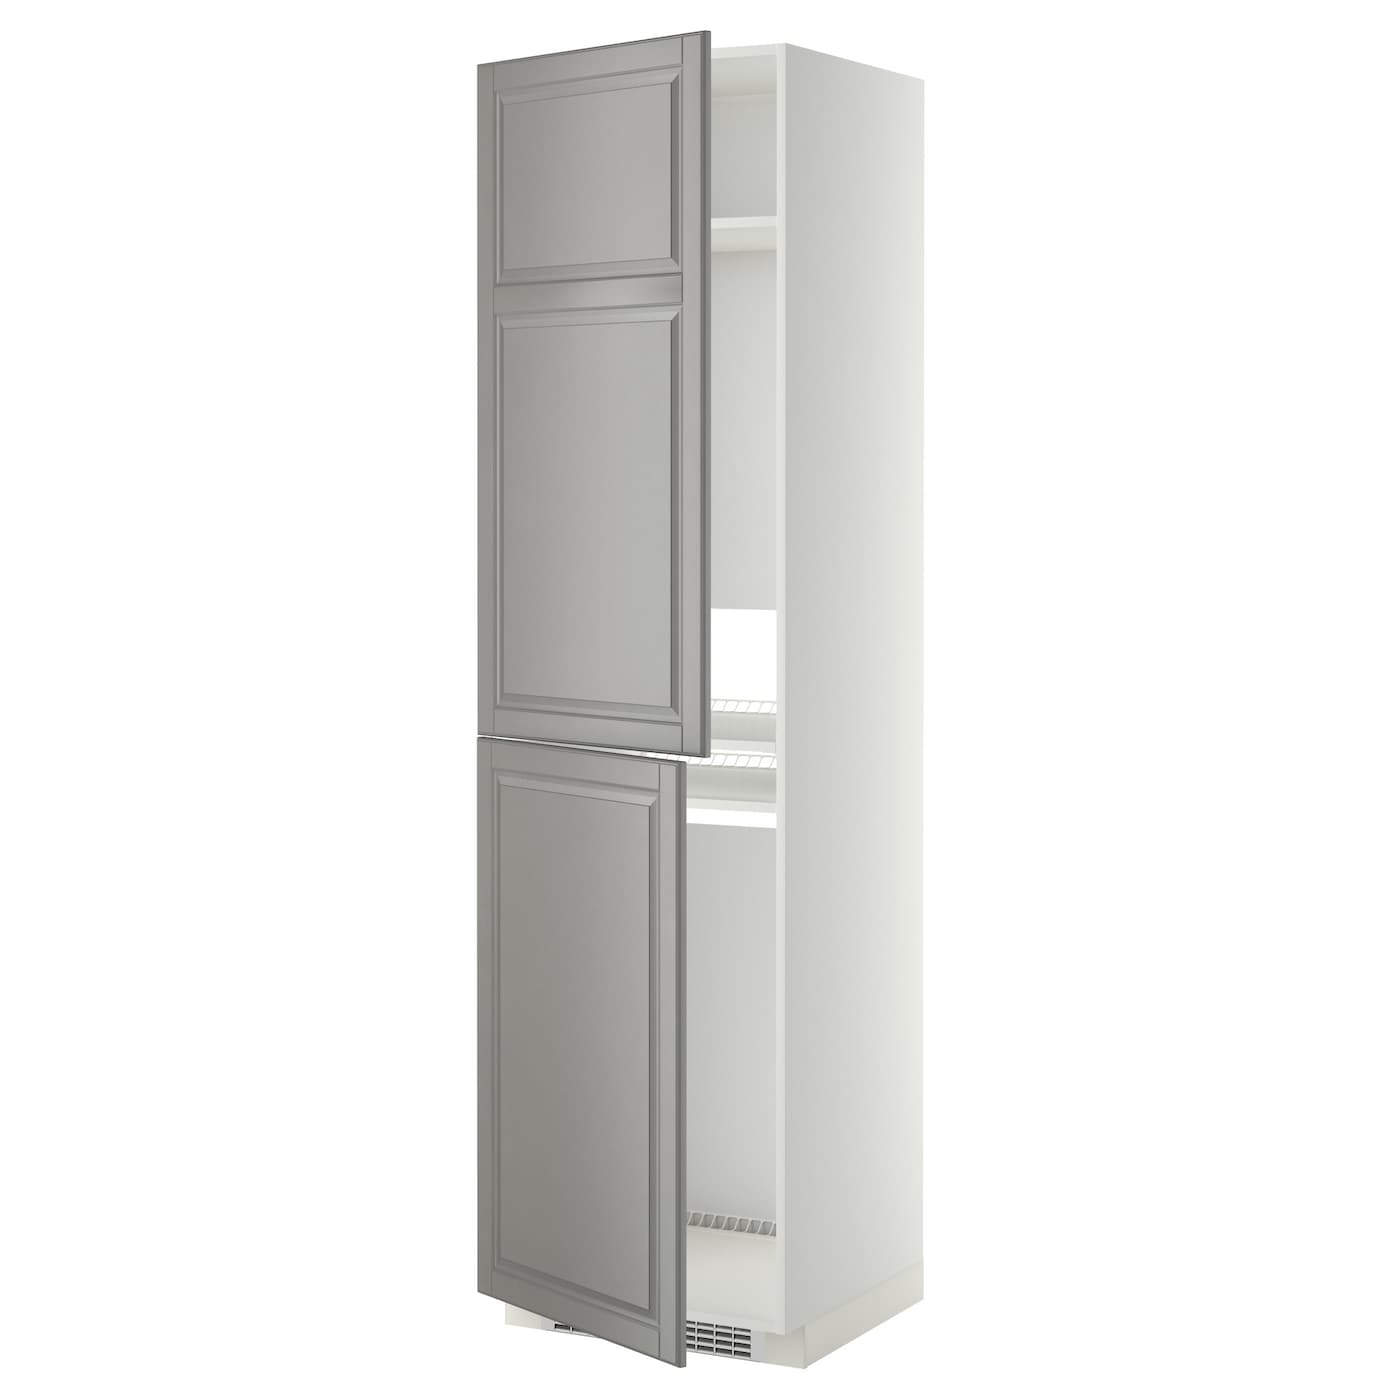 Metod high cabinet for fridge freezer white bodbyn grey 60 for Ikea fridge cabinet